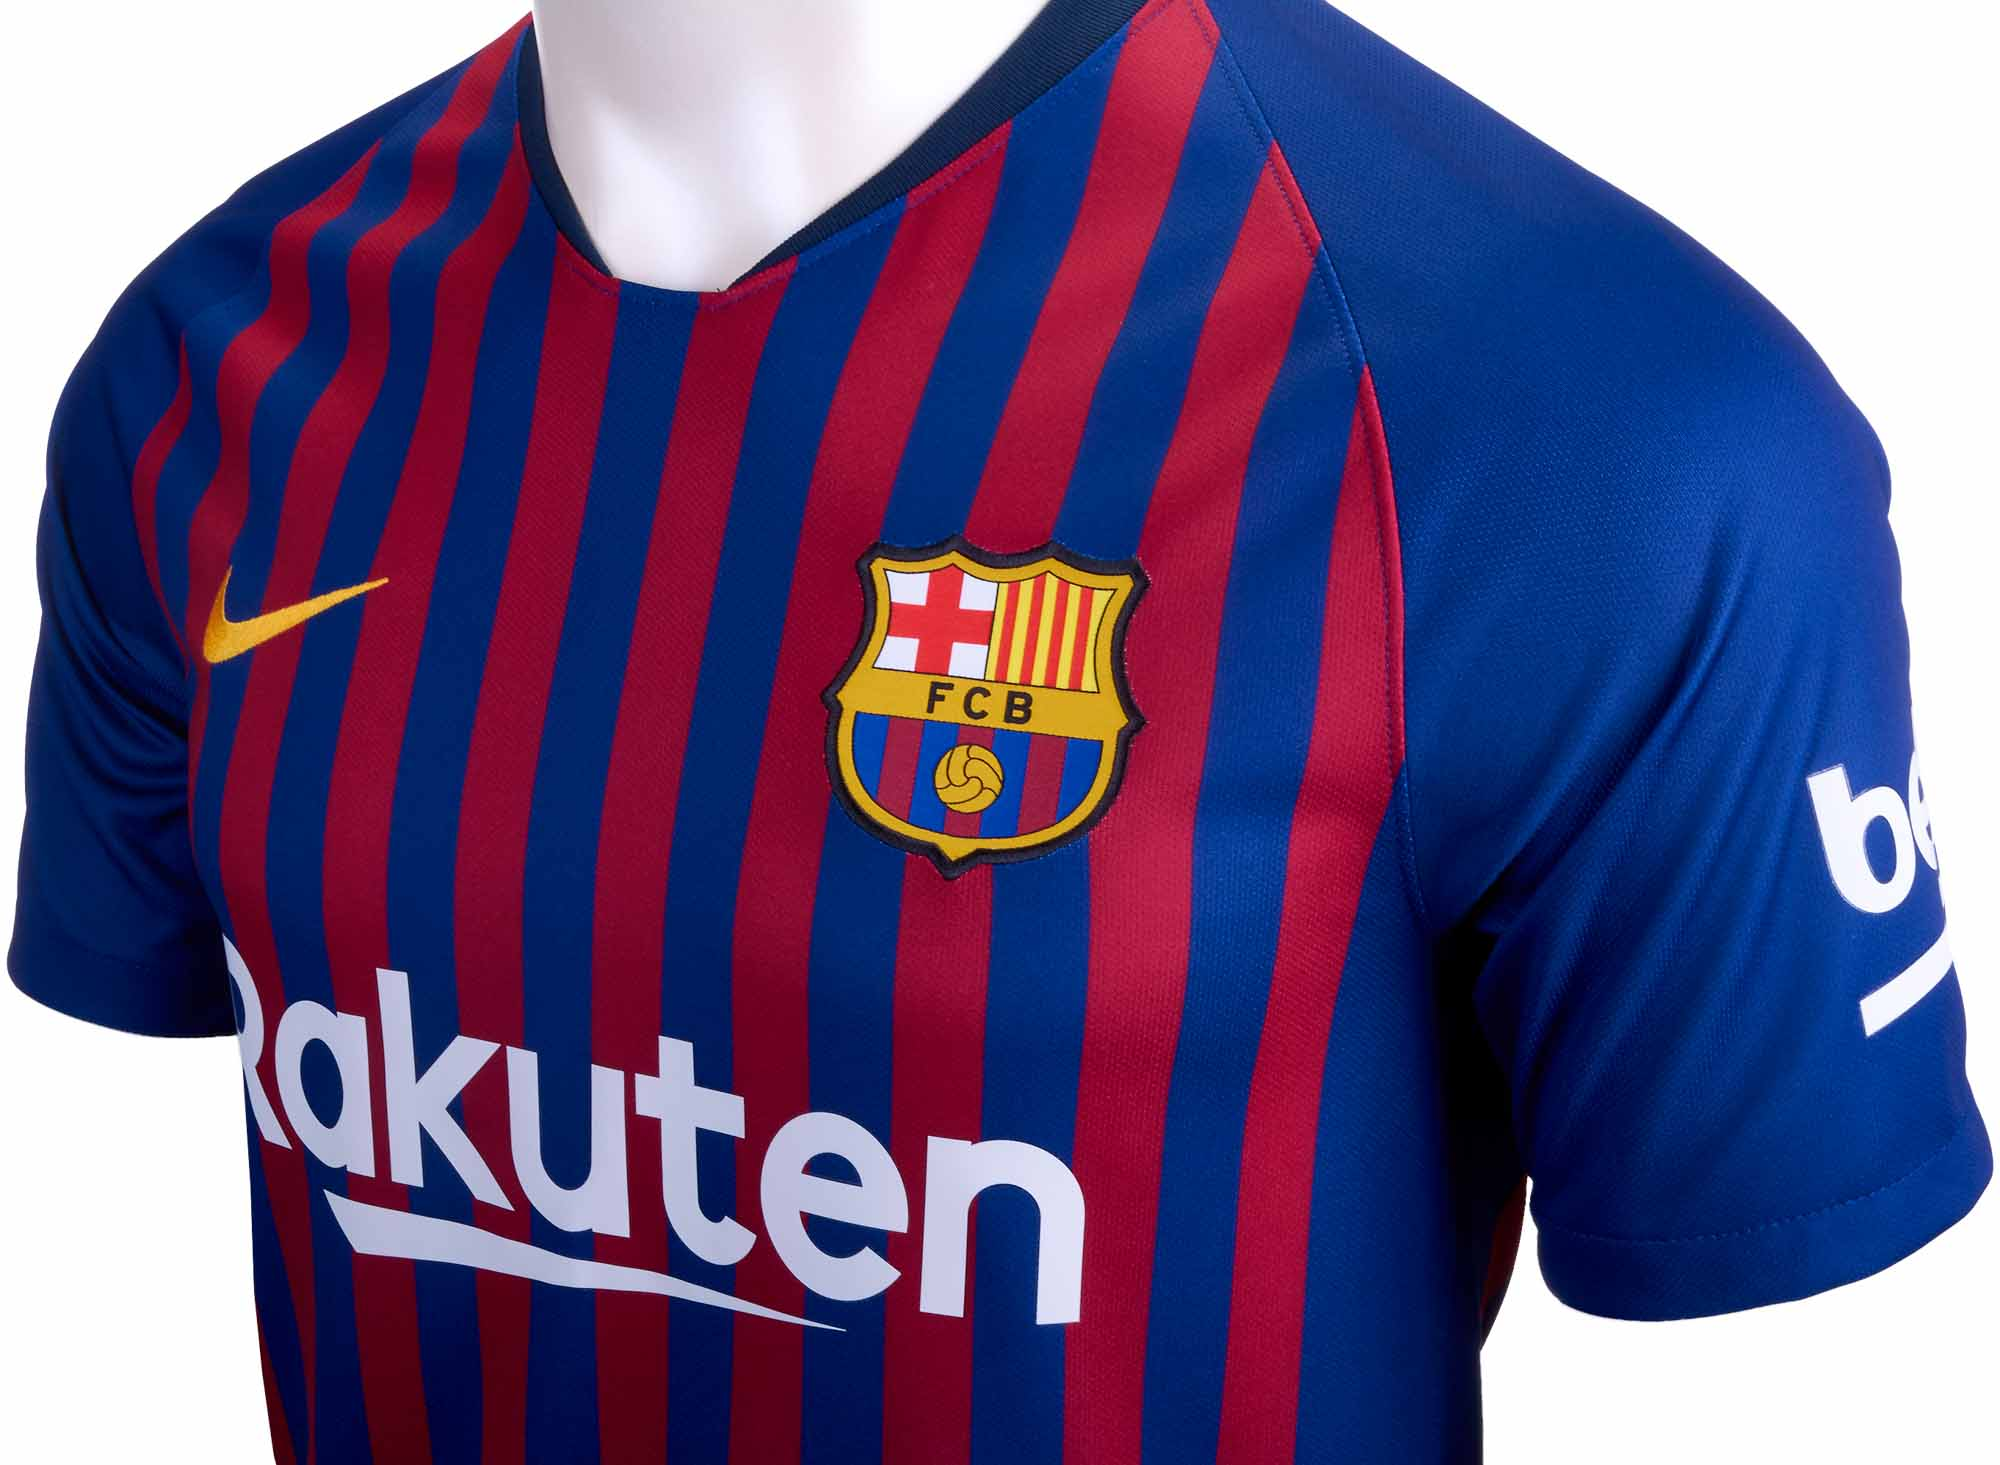 hot sale online 2a3e5 7ab13 Nike Lionel Messi Barcelona Home Jersey - Youth 2018-19 ...